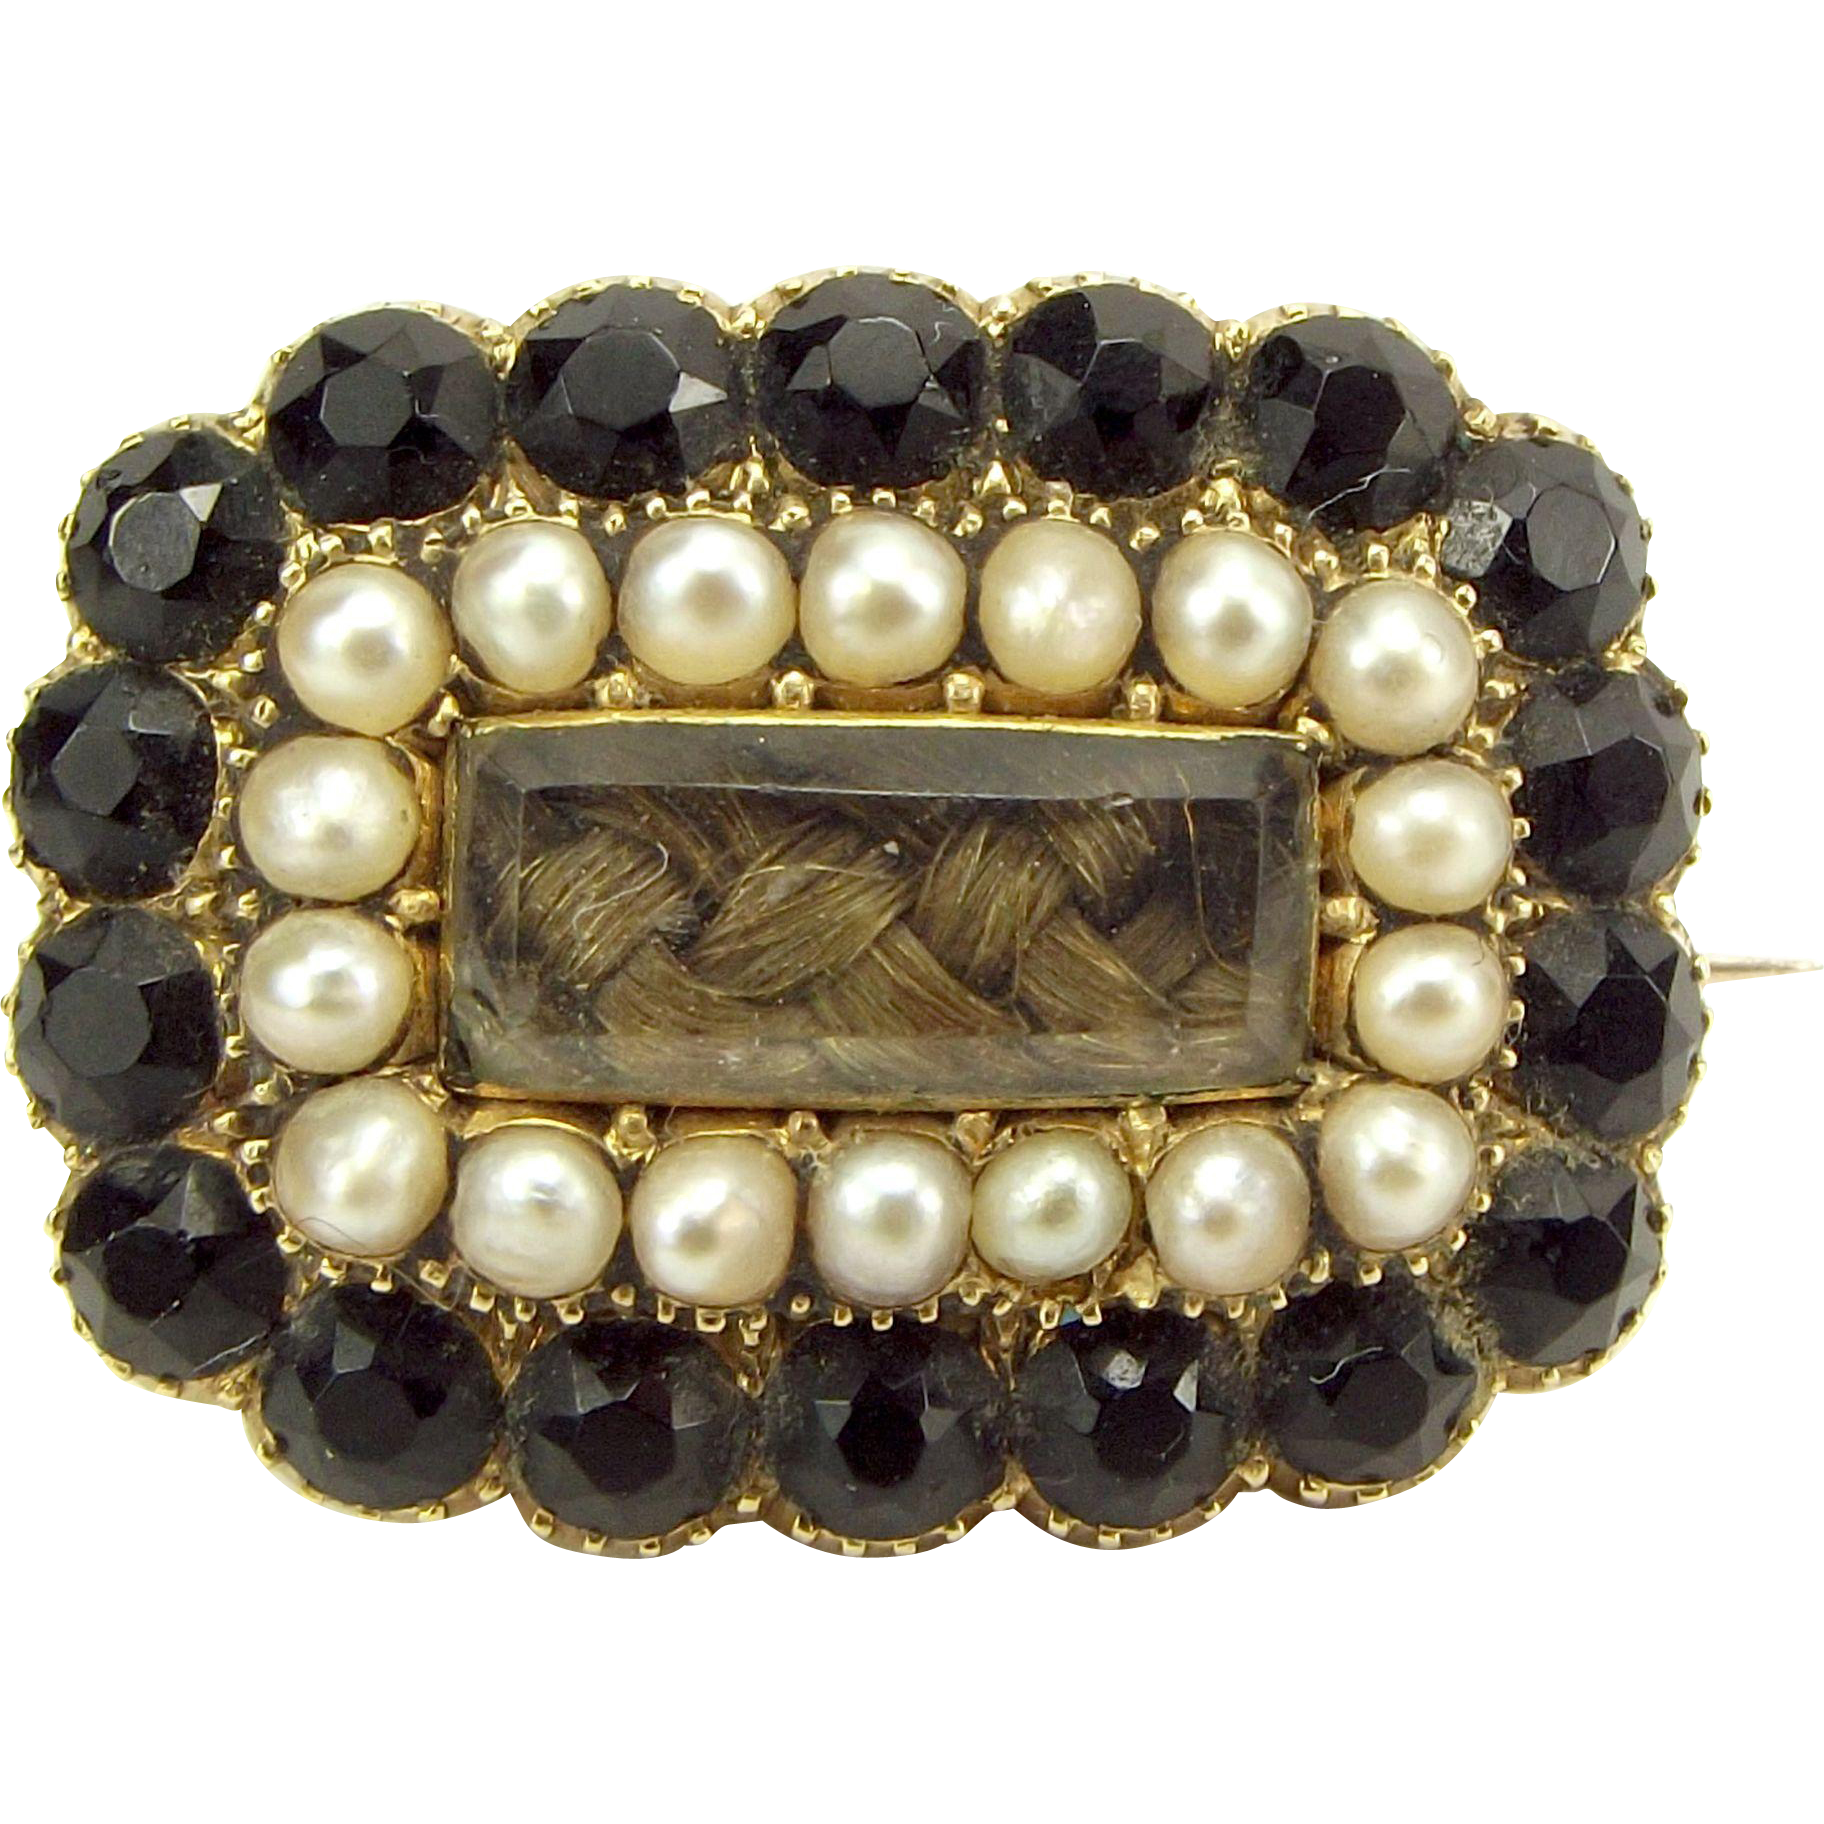 Georgian 15ct Gold, Seed Pearl, Jet, Hair MOURNING Brooch/Pin 1823